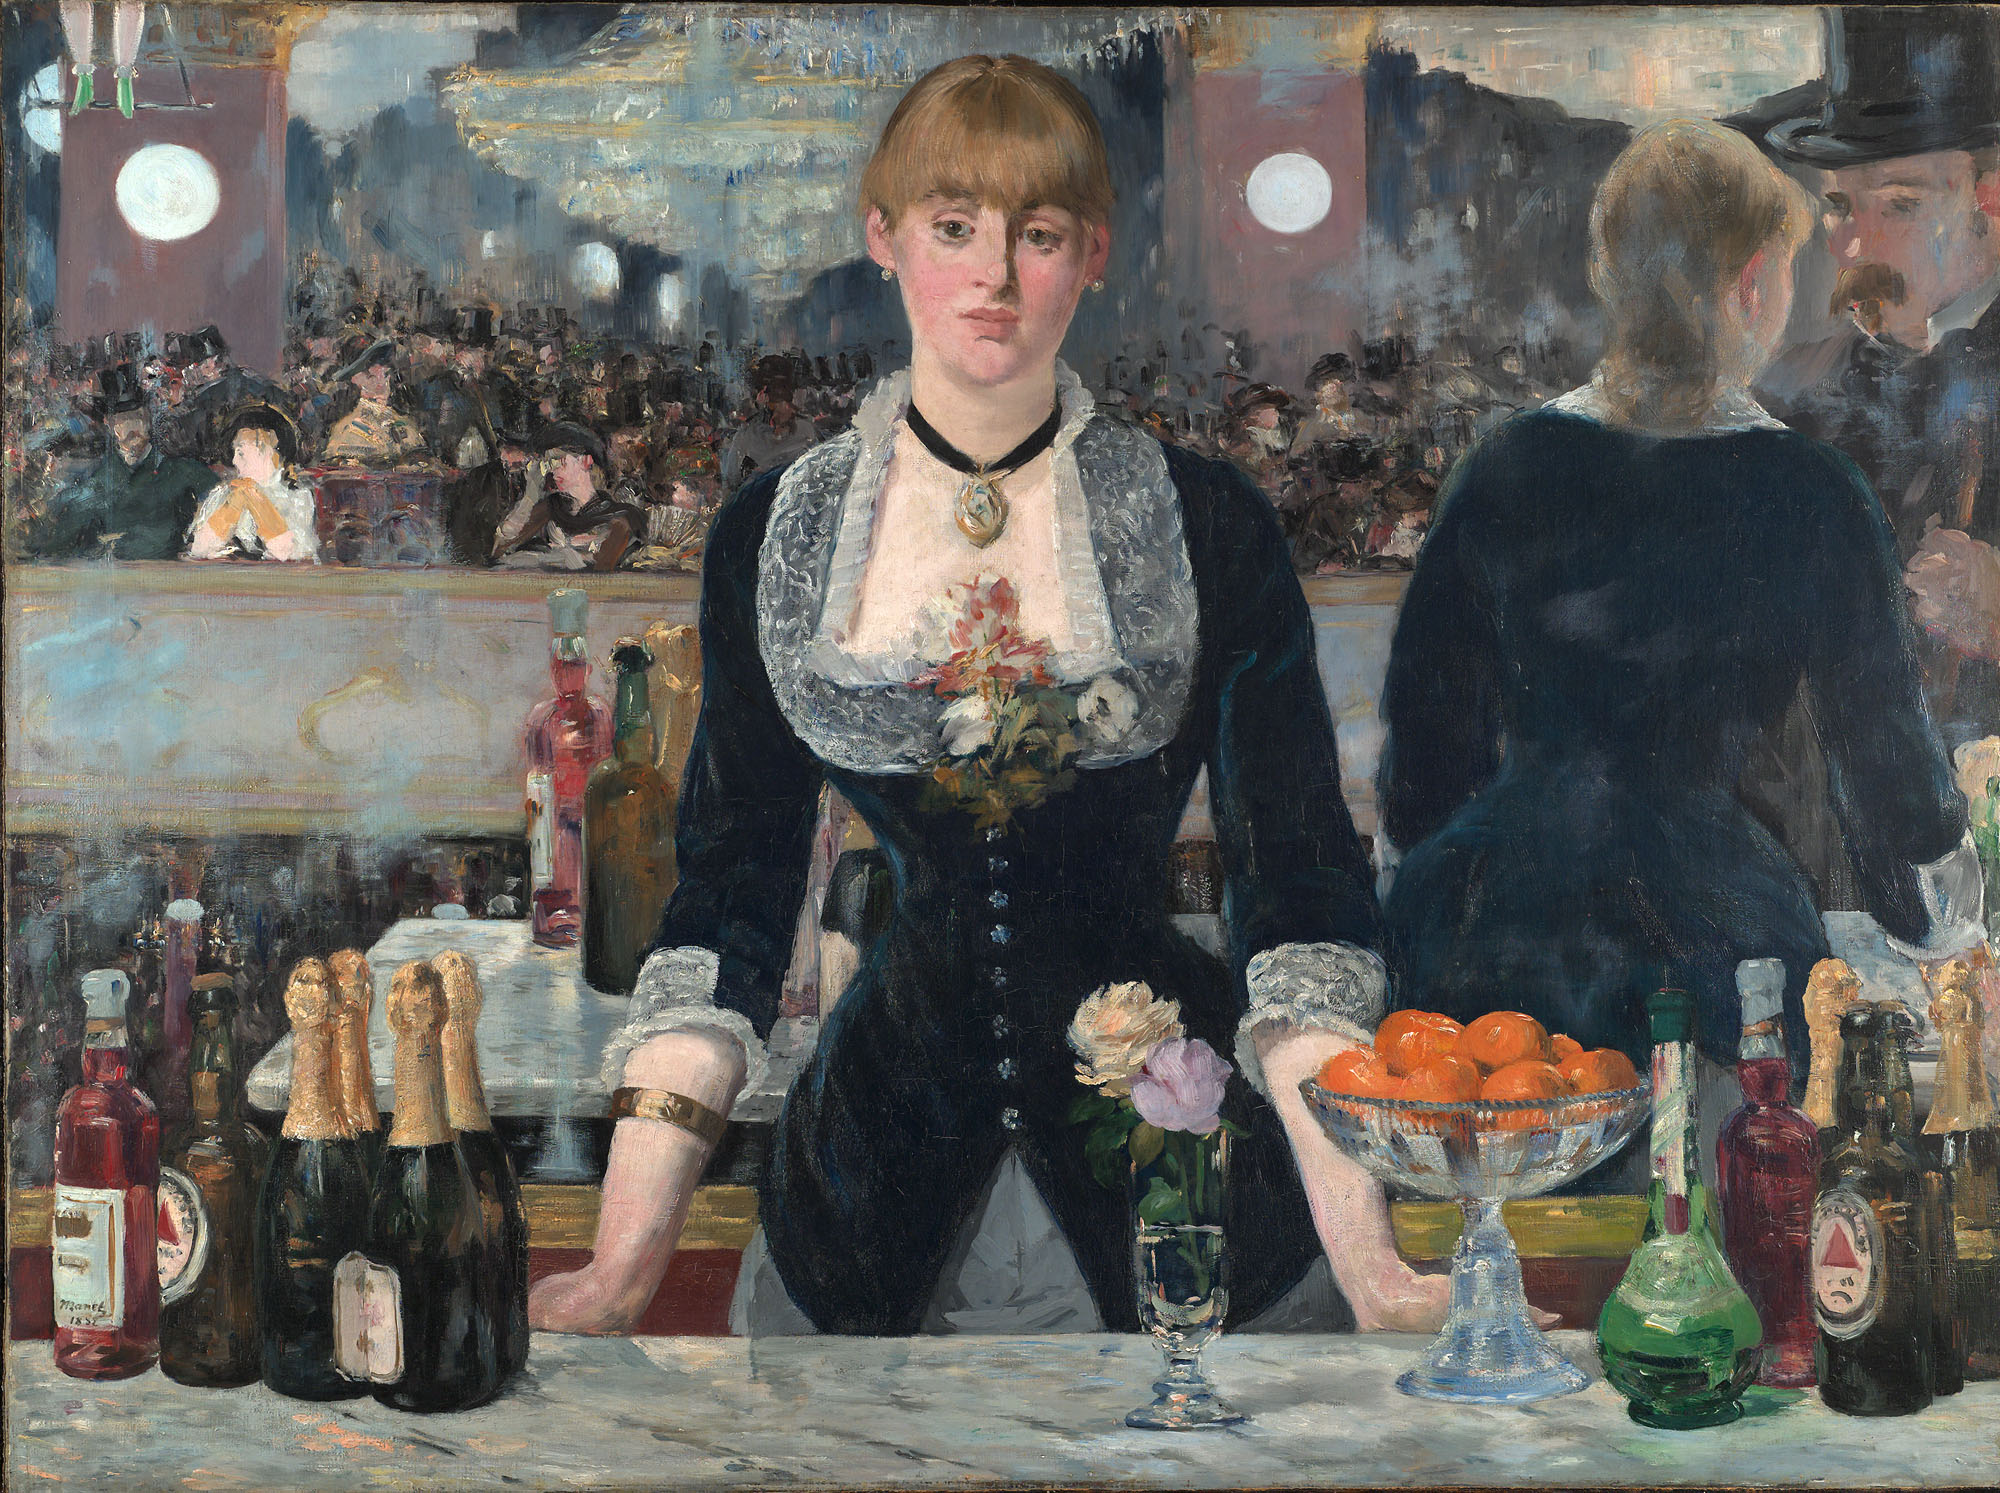 Look for the Bass beer triangle in this painting by Manet (1822). The logo is the oldest known trademark.